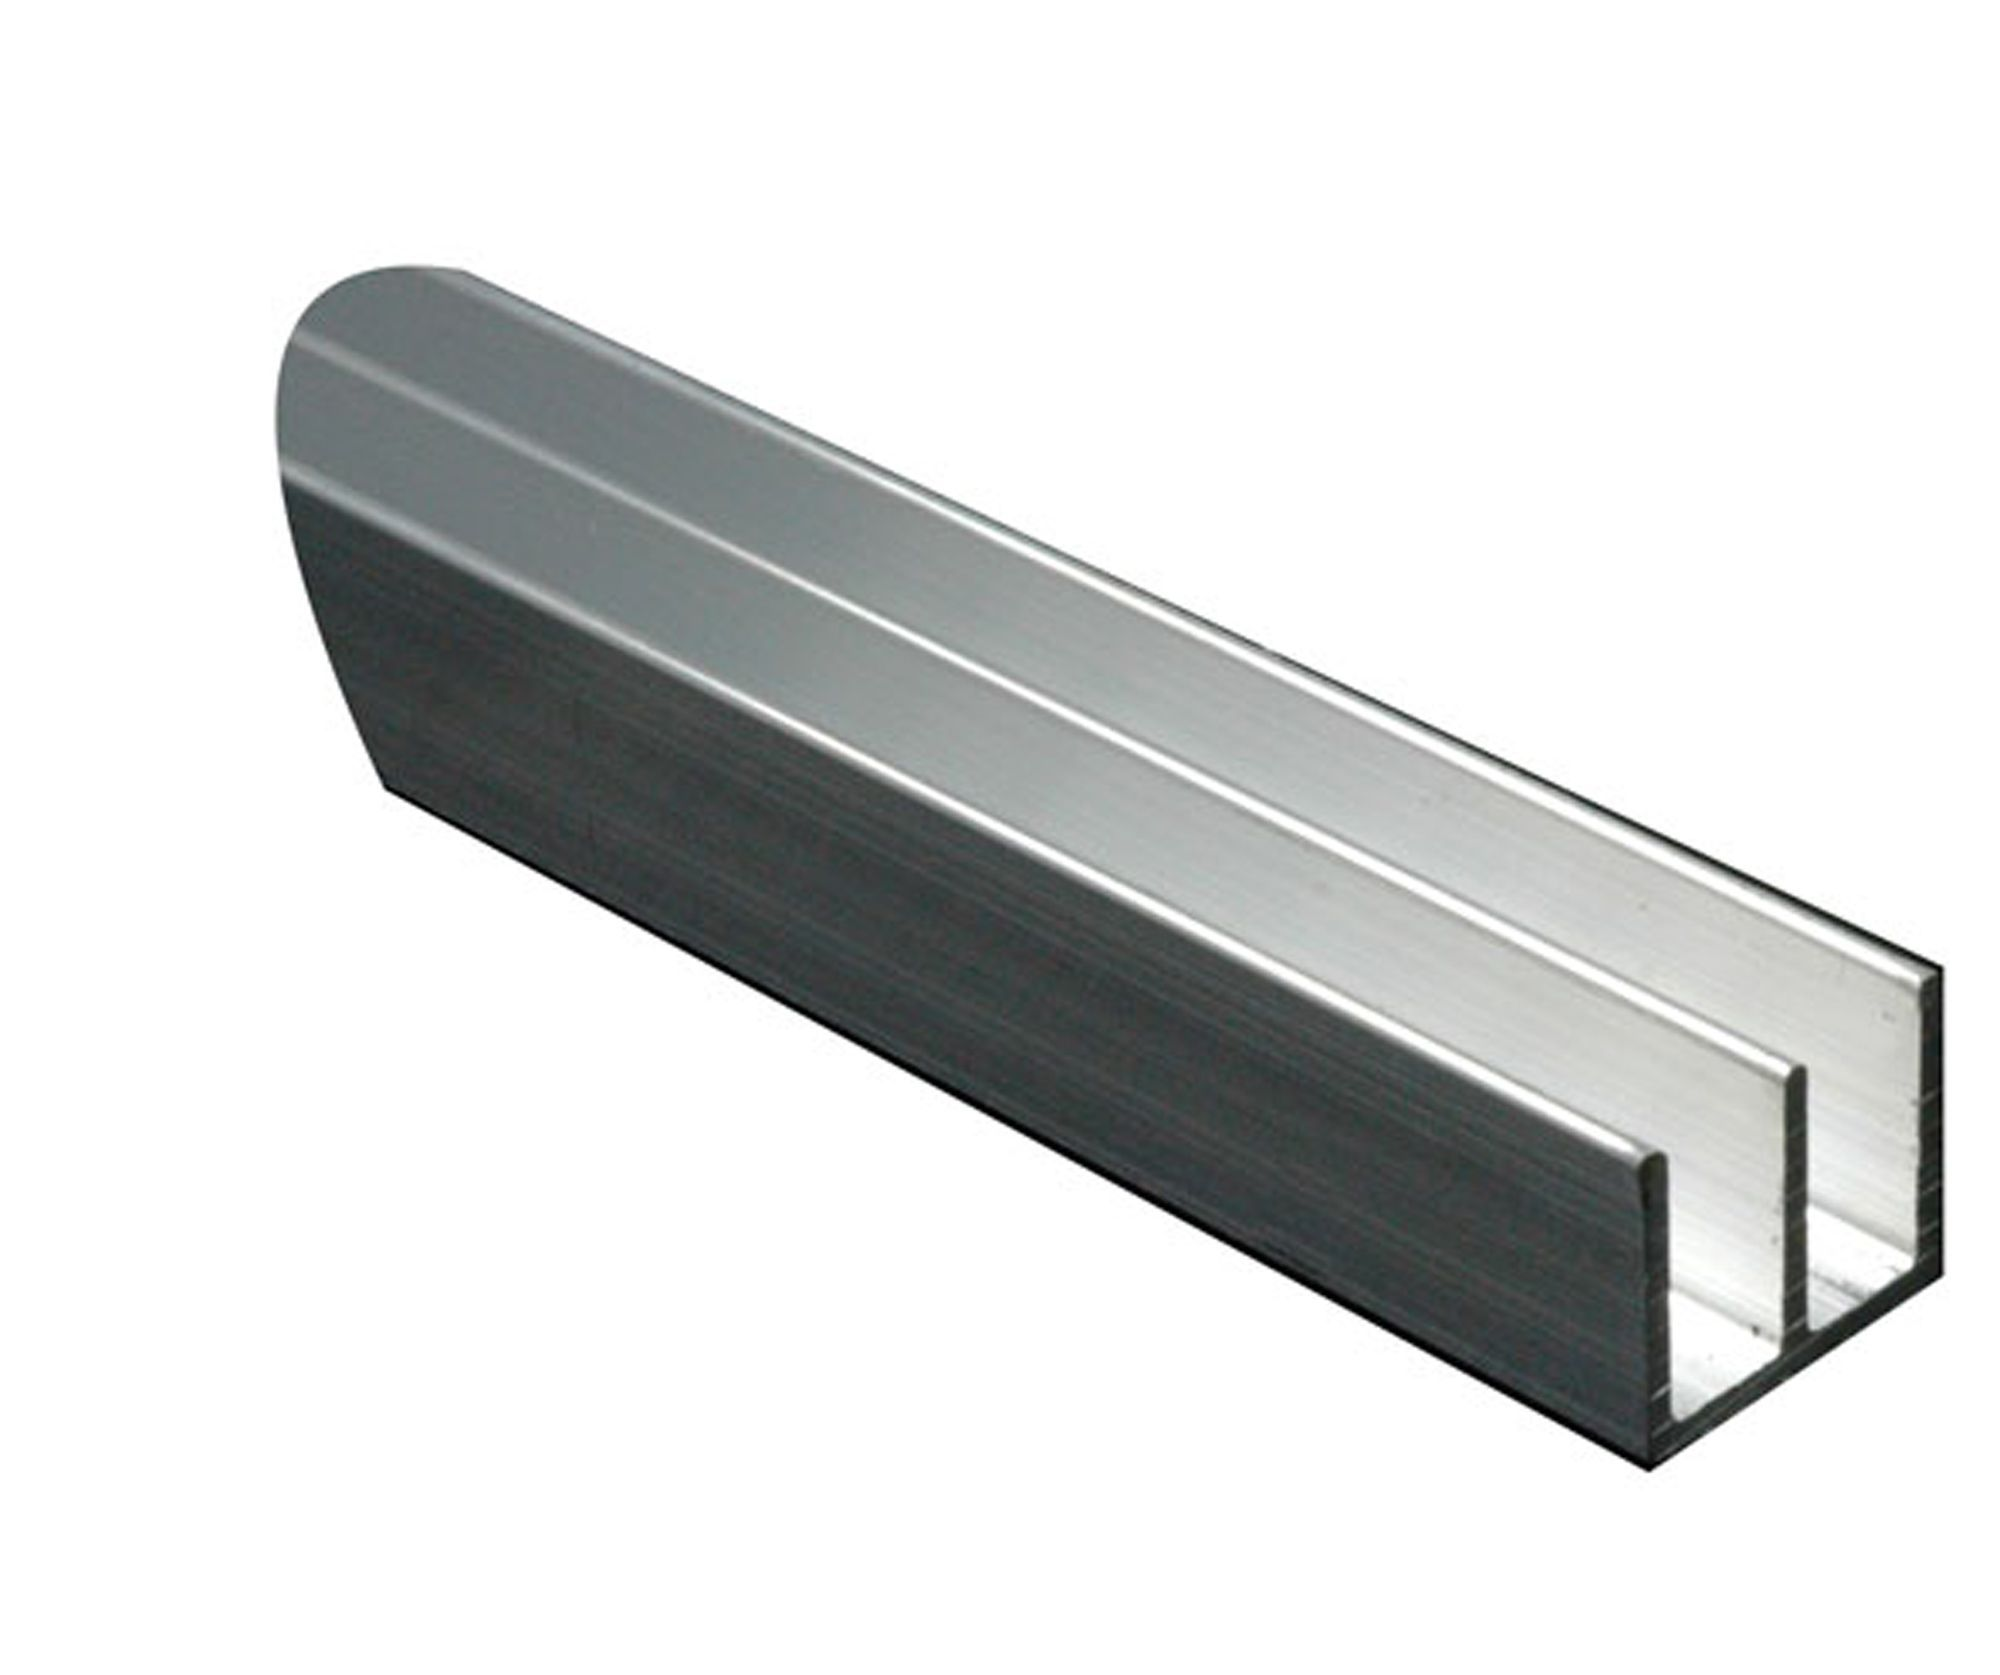 Aluminium Double U Profile H 10mm W 16mm L 1m